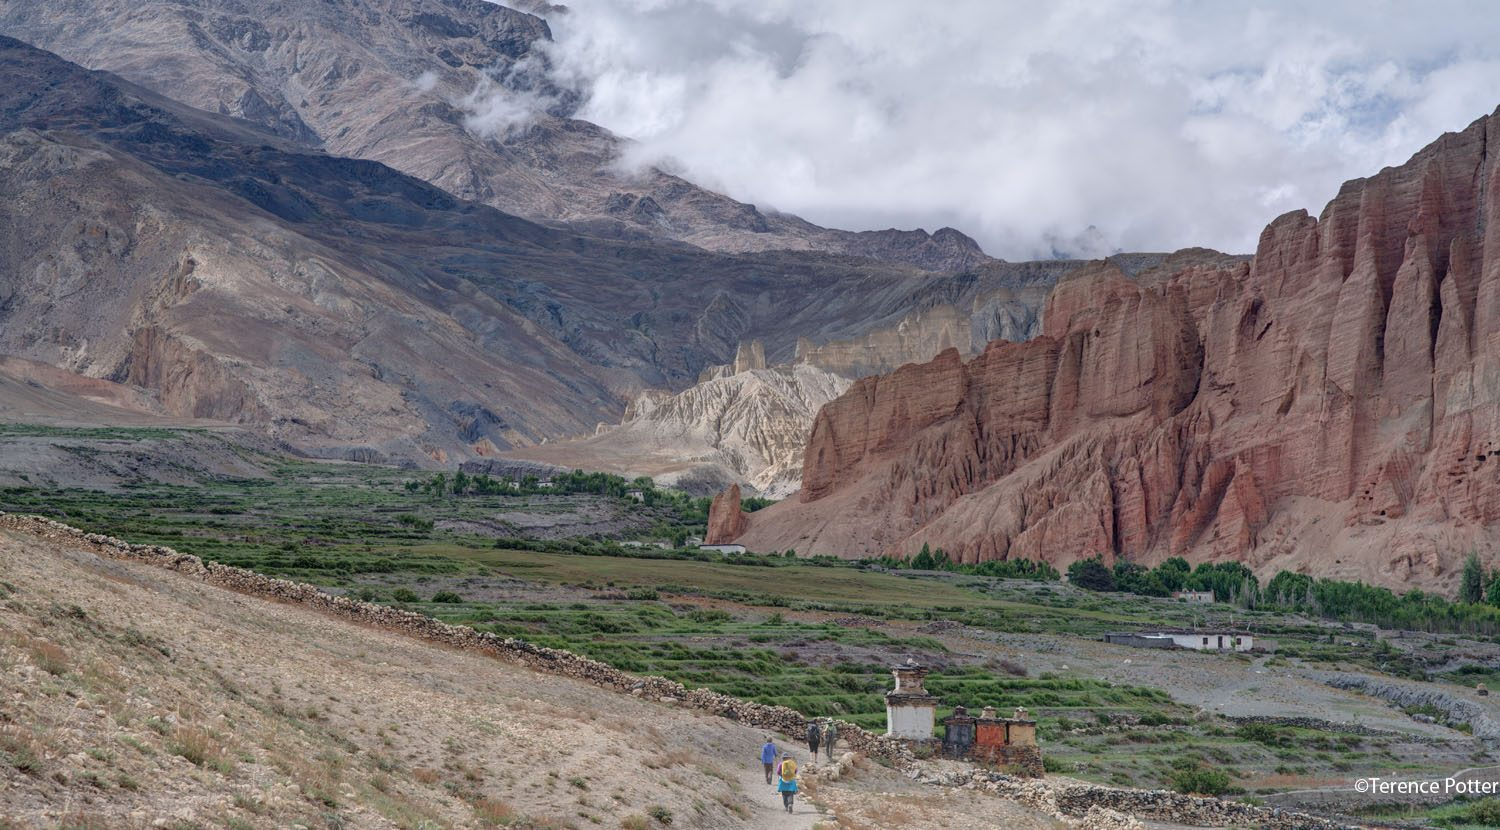 Approaching the red cliffs of Dhakmar